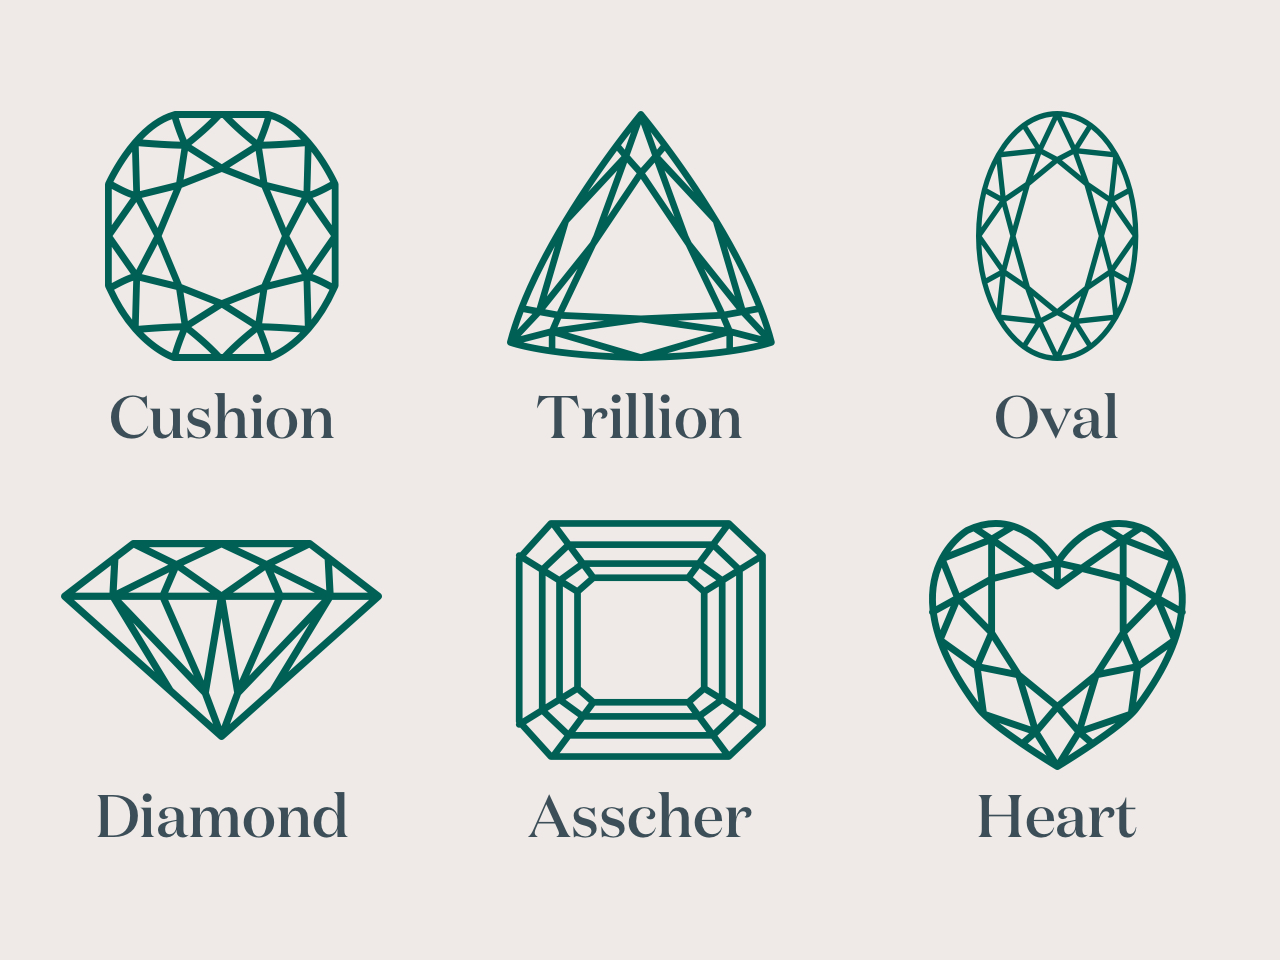 6 various diamond shapes including cushion, trillion, oval, diamond, asscher and heart – illustration